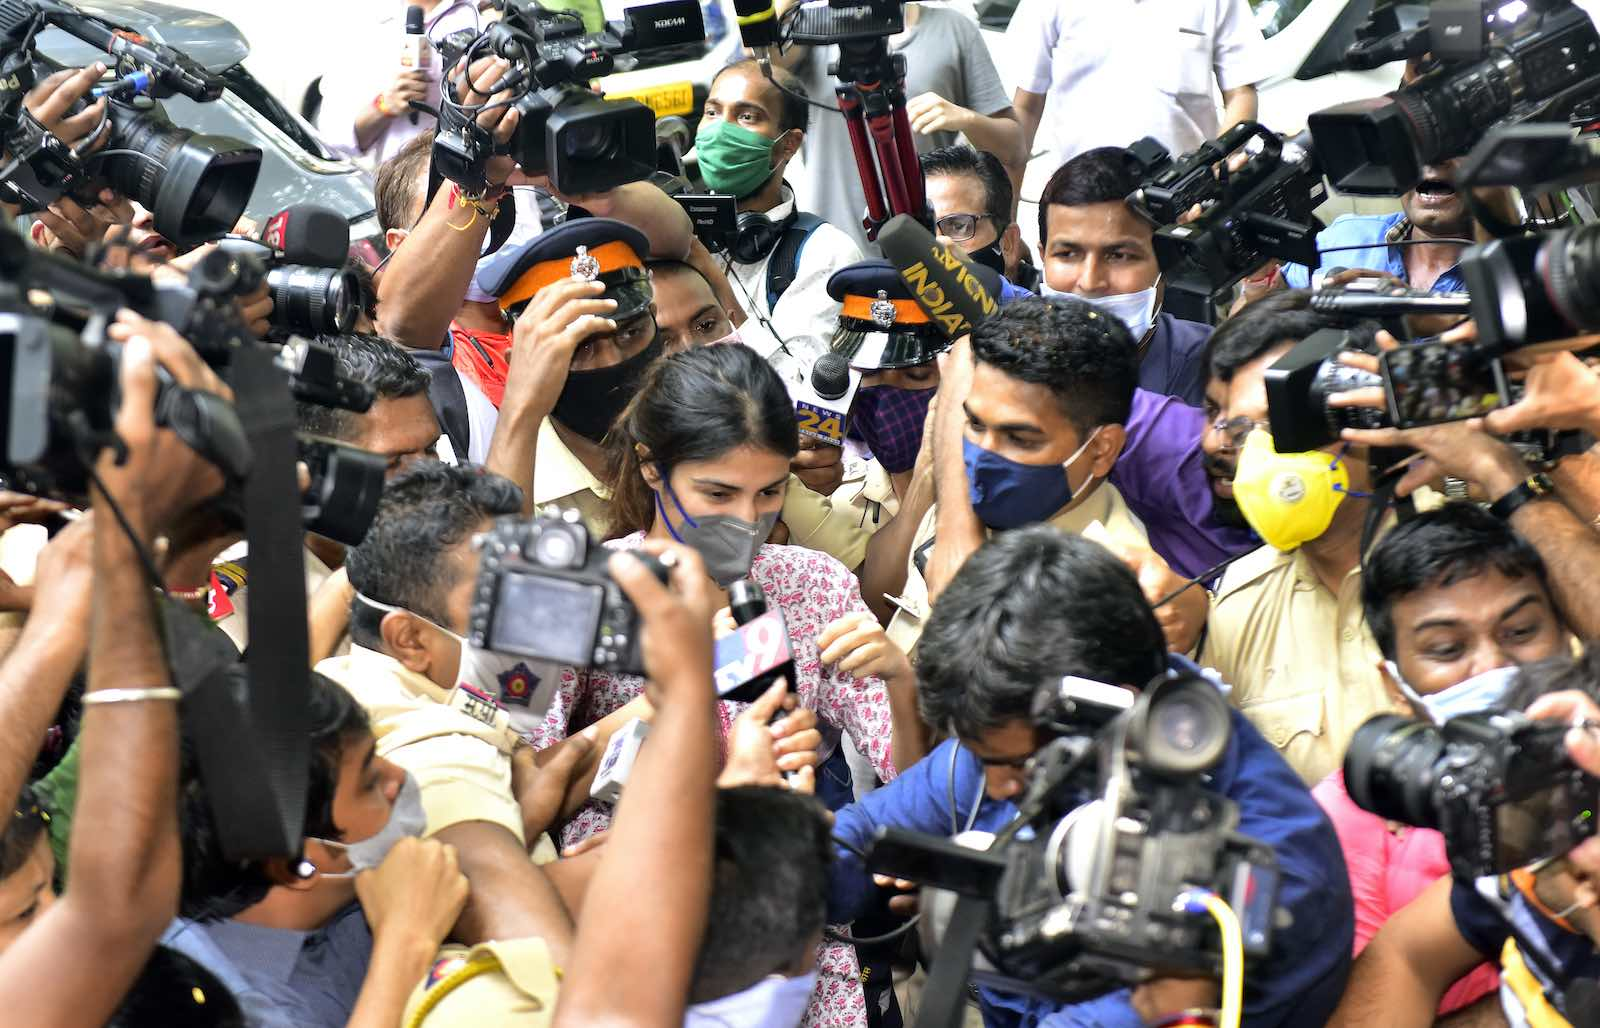 Indian actress Rhea Chakraborty arrives for questioning at the Narcotics Control Bureau office in Mumbai, 6 September 2020 (Anshuman Poyrekar/Hindustan Times via Getty Images)